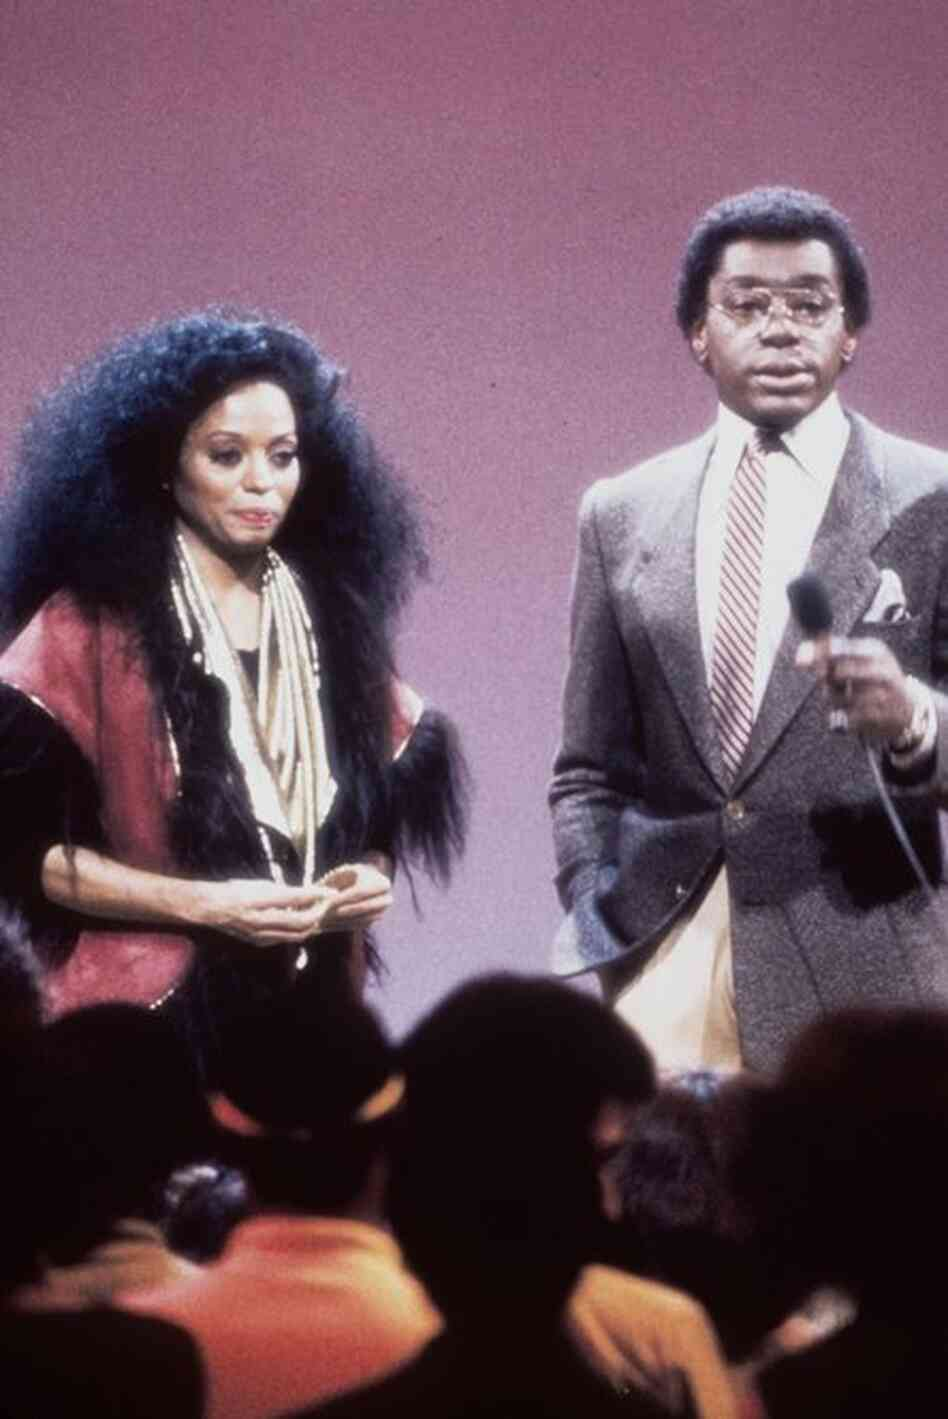 Diana Ross also appeared on the show, which offered a weekly update of music, style and dance moves from some of the top black artists of the '70s and '80s.